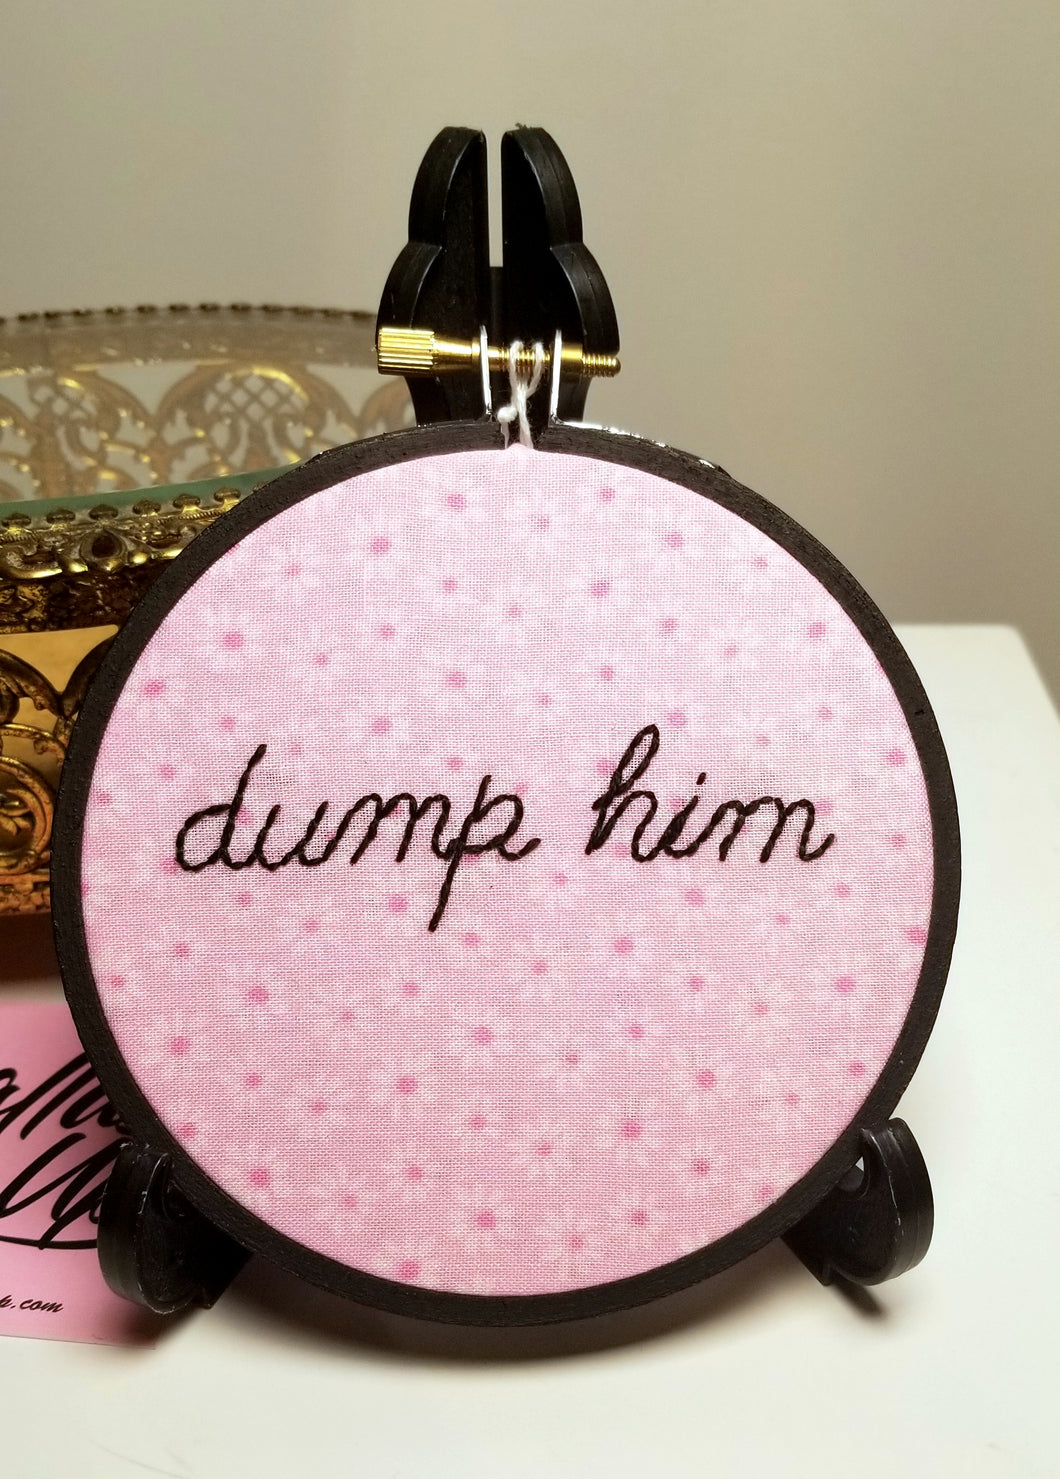 Kitschy Needle Dump Him Embroidery